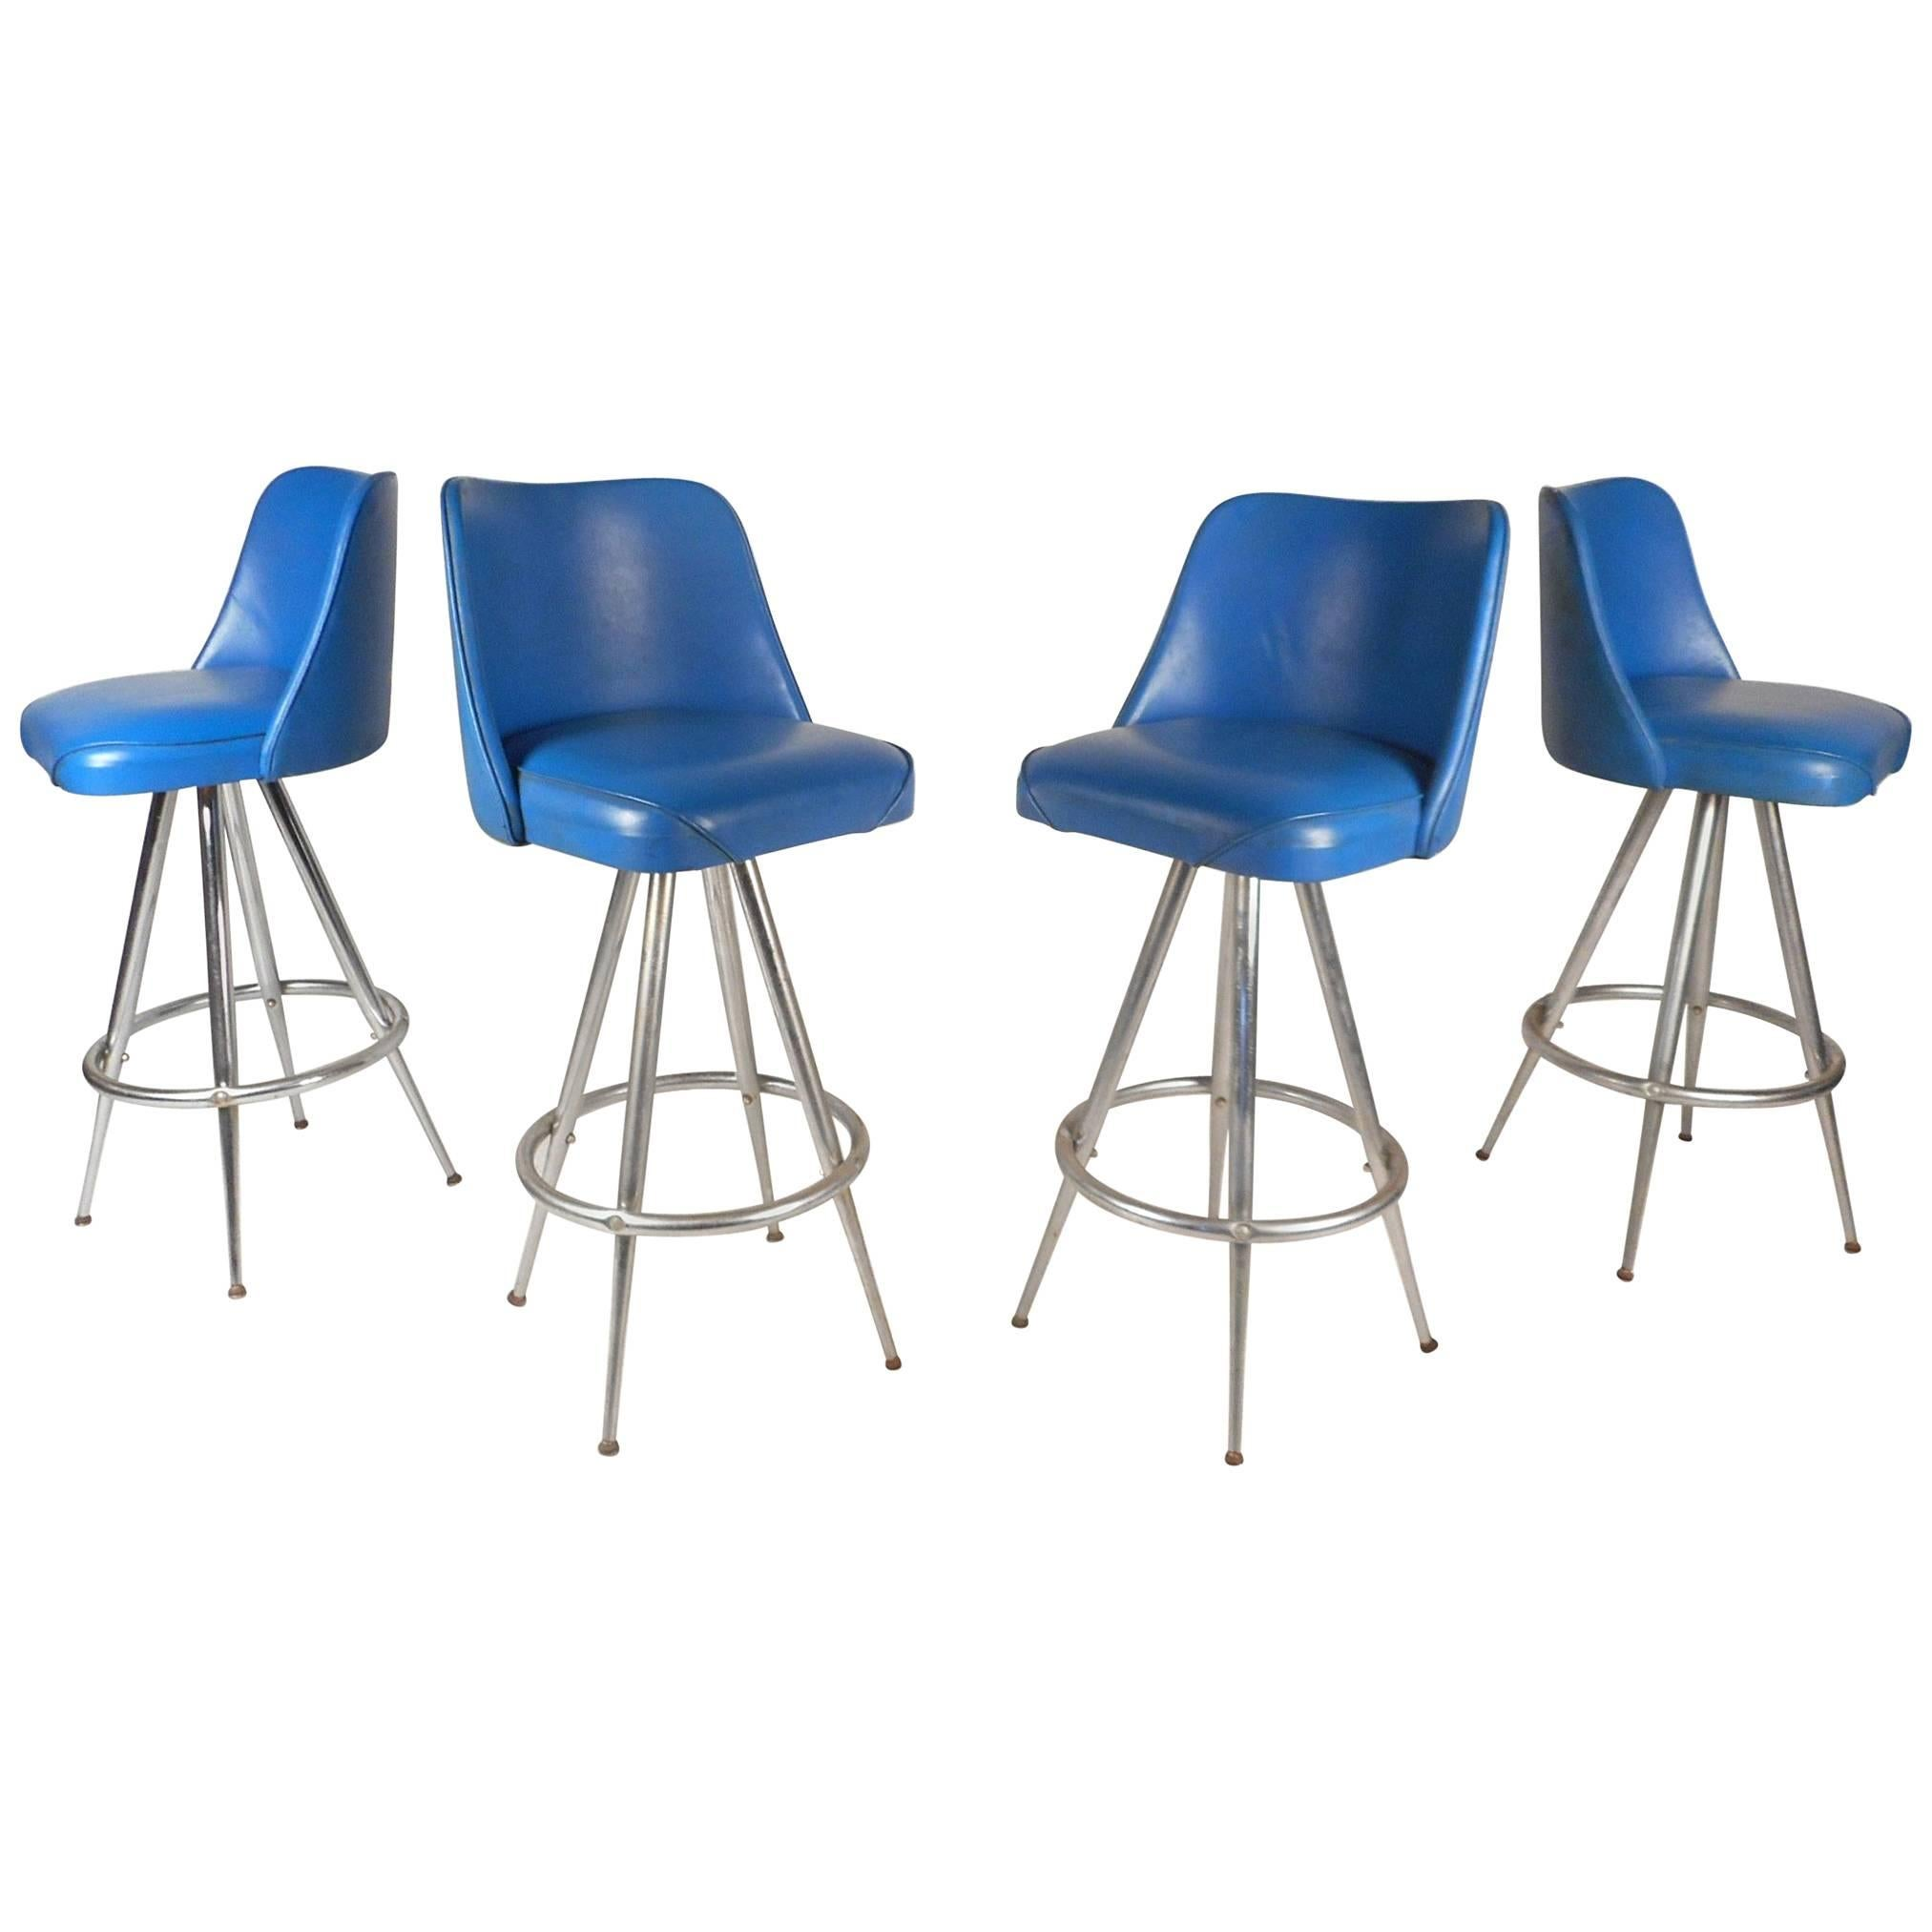 Set of Four Mid-Century Modern Swivel Bar Stools by L & B Products Corporation